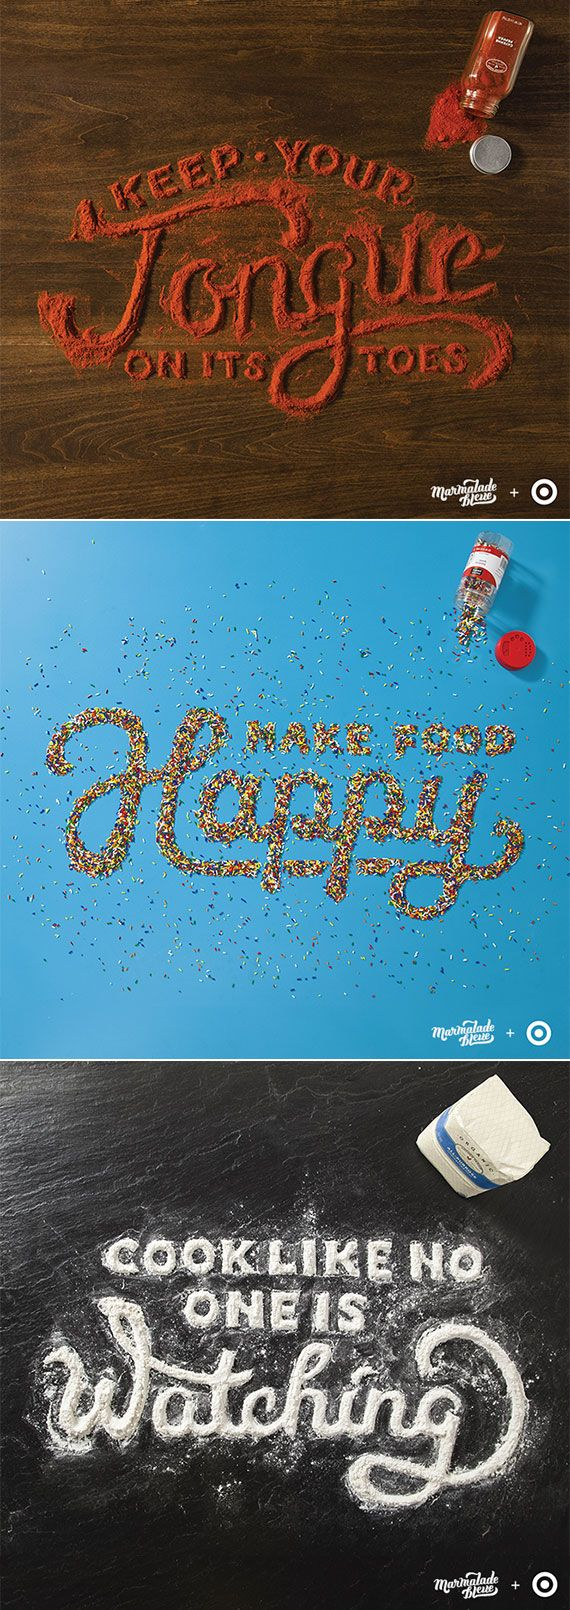 food typography by Danielle Evans for Target @Annie Compean Compean Compean Compean Compean Tyner this reminds me of you